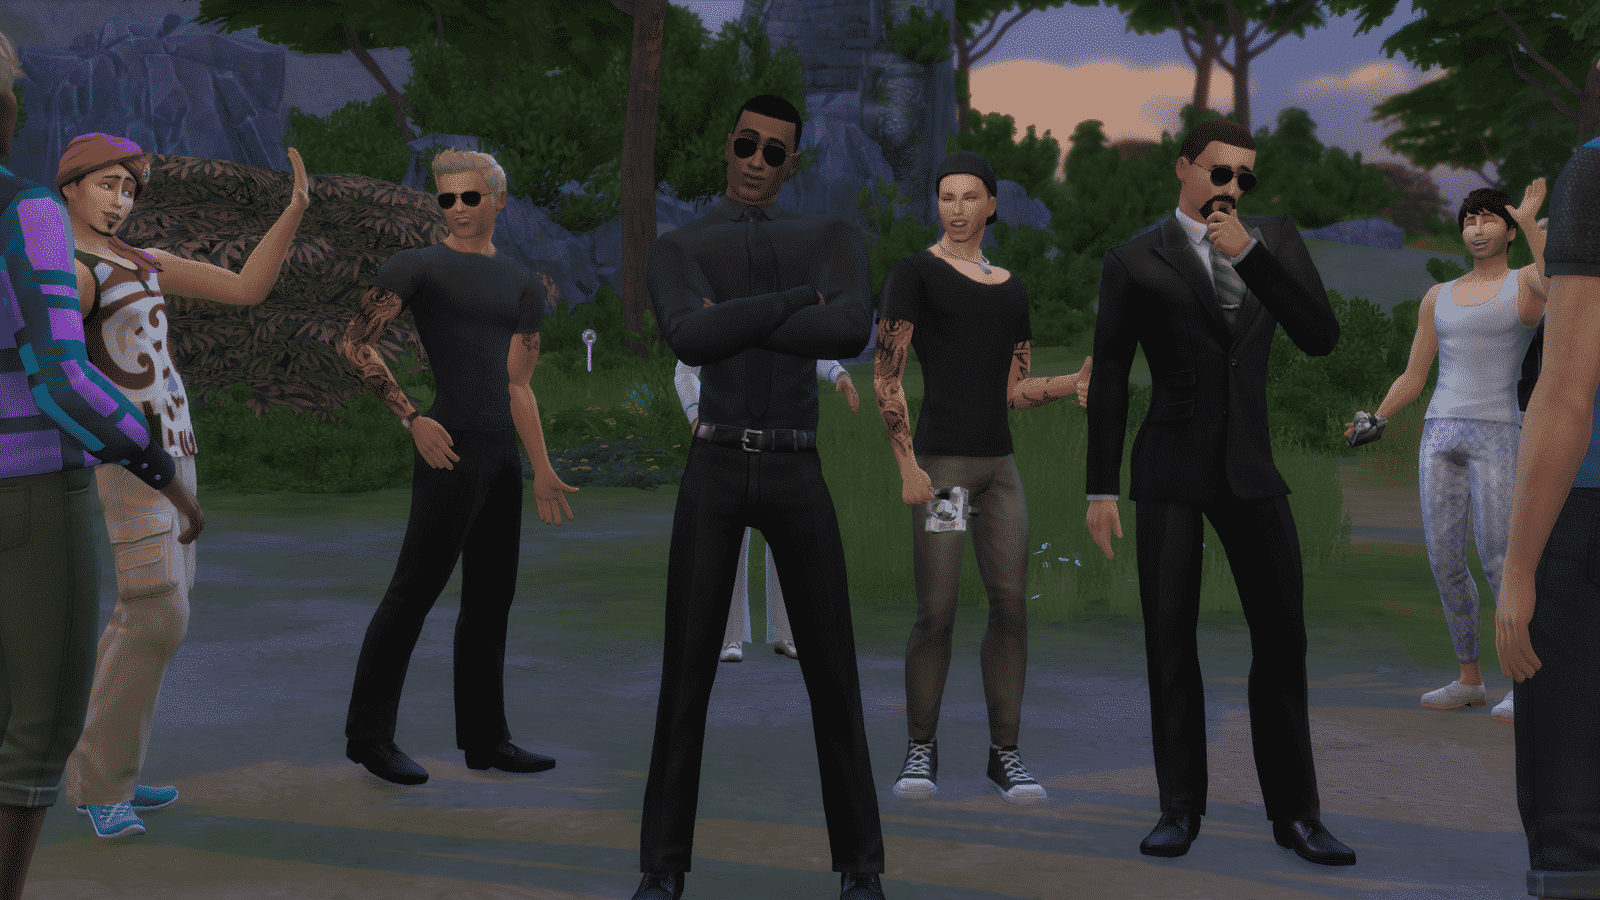 The Sims 4 Road To Fame Mod is already getting big new features